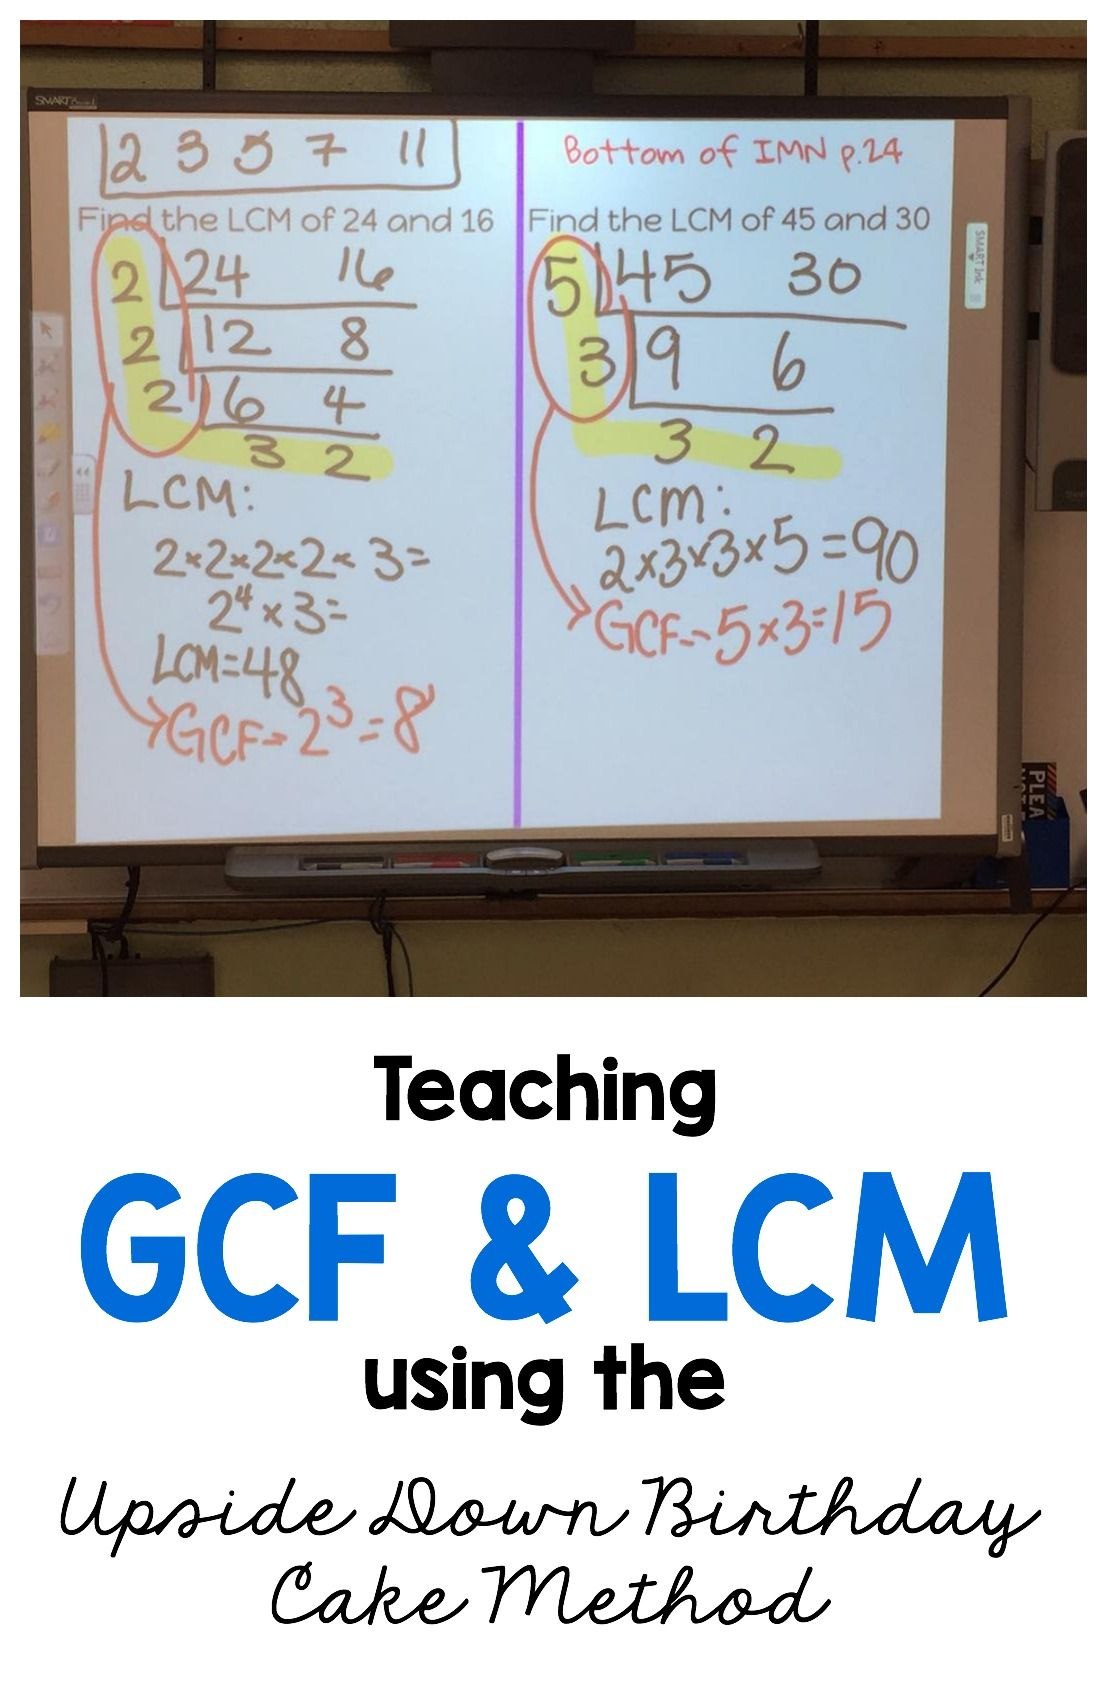 Prime Factorization Gcf Amp Lcm With The Upside Down Cake Method